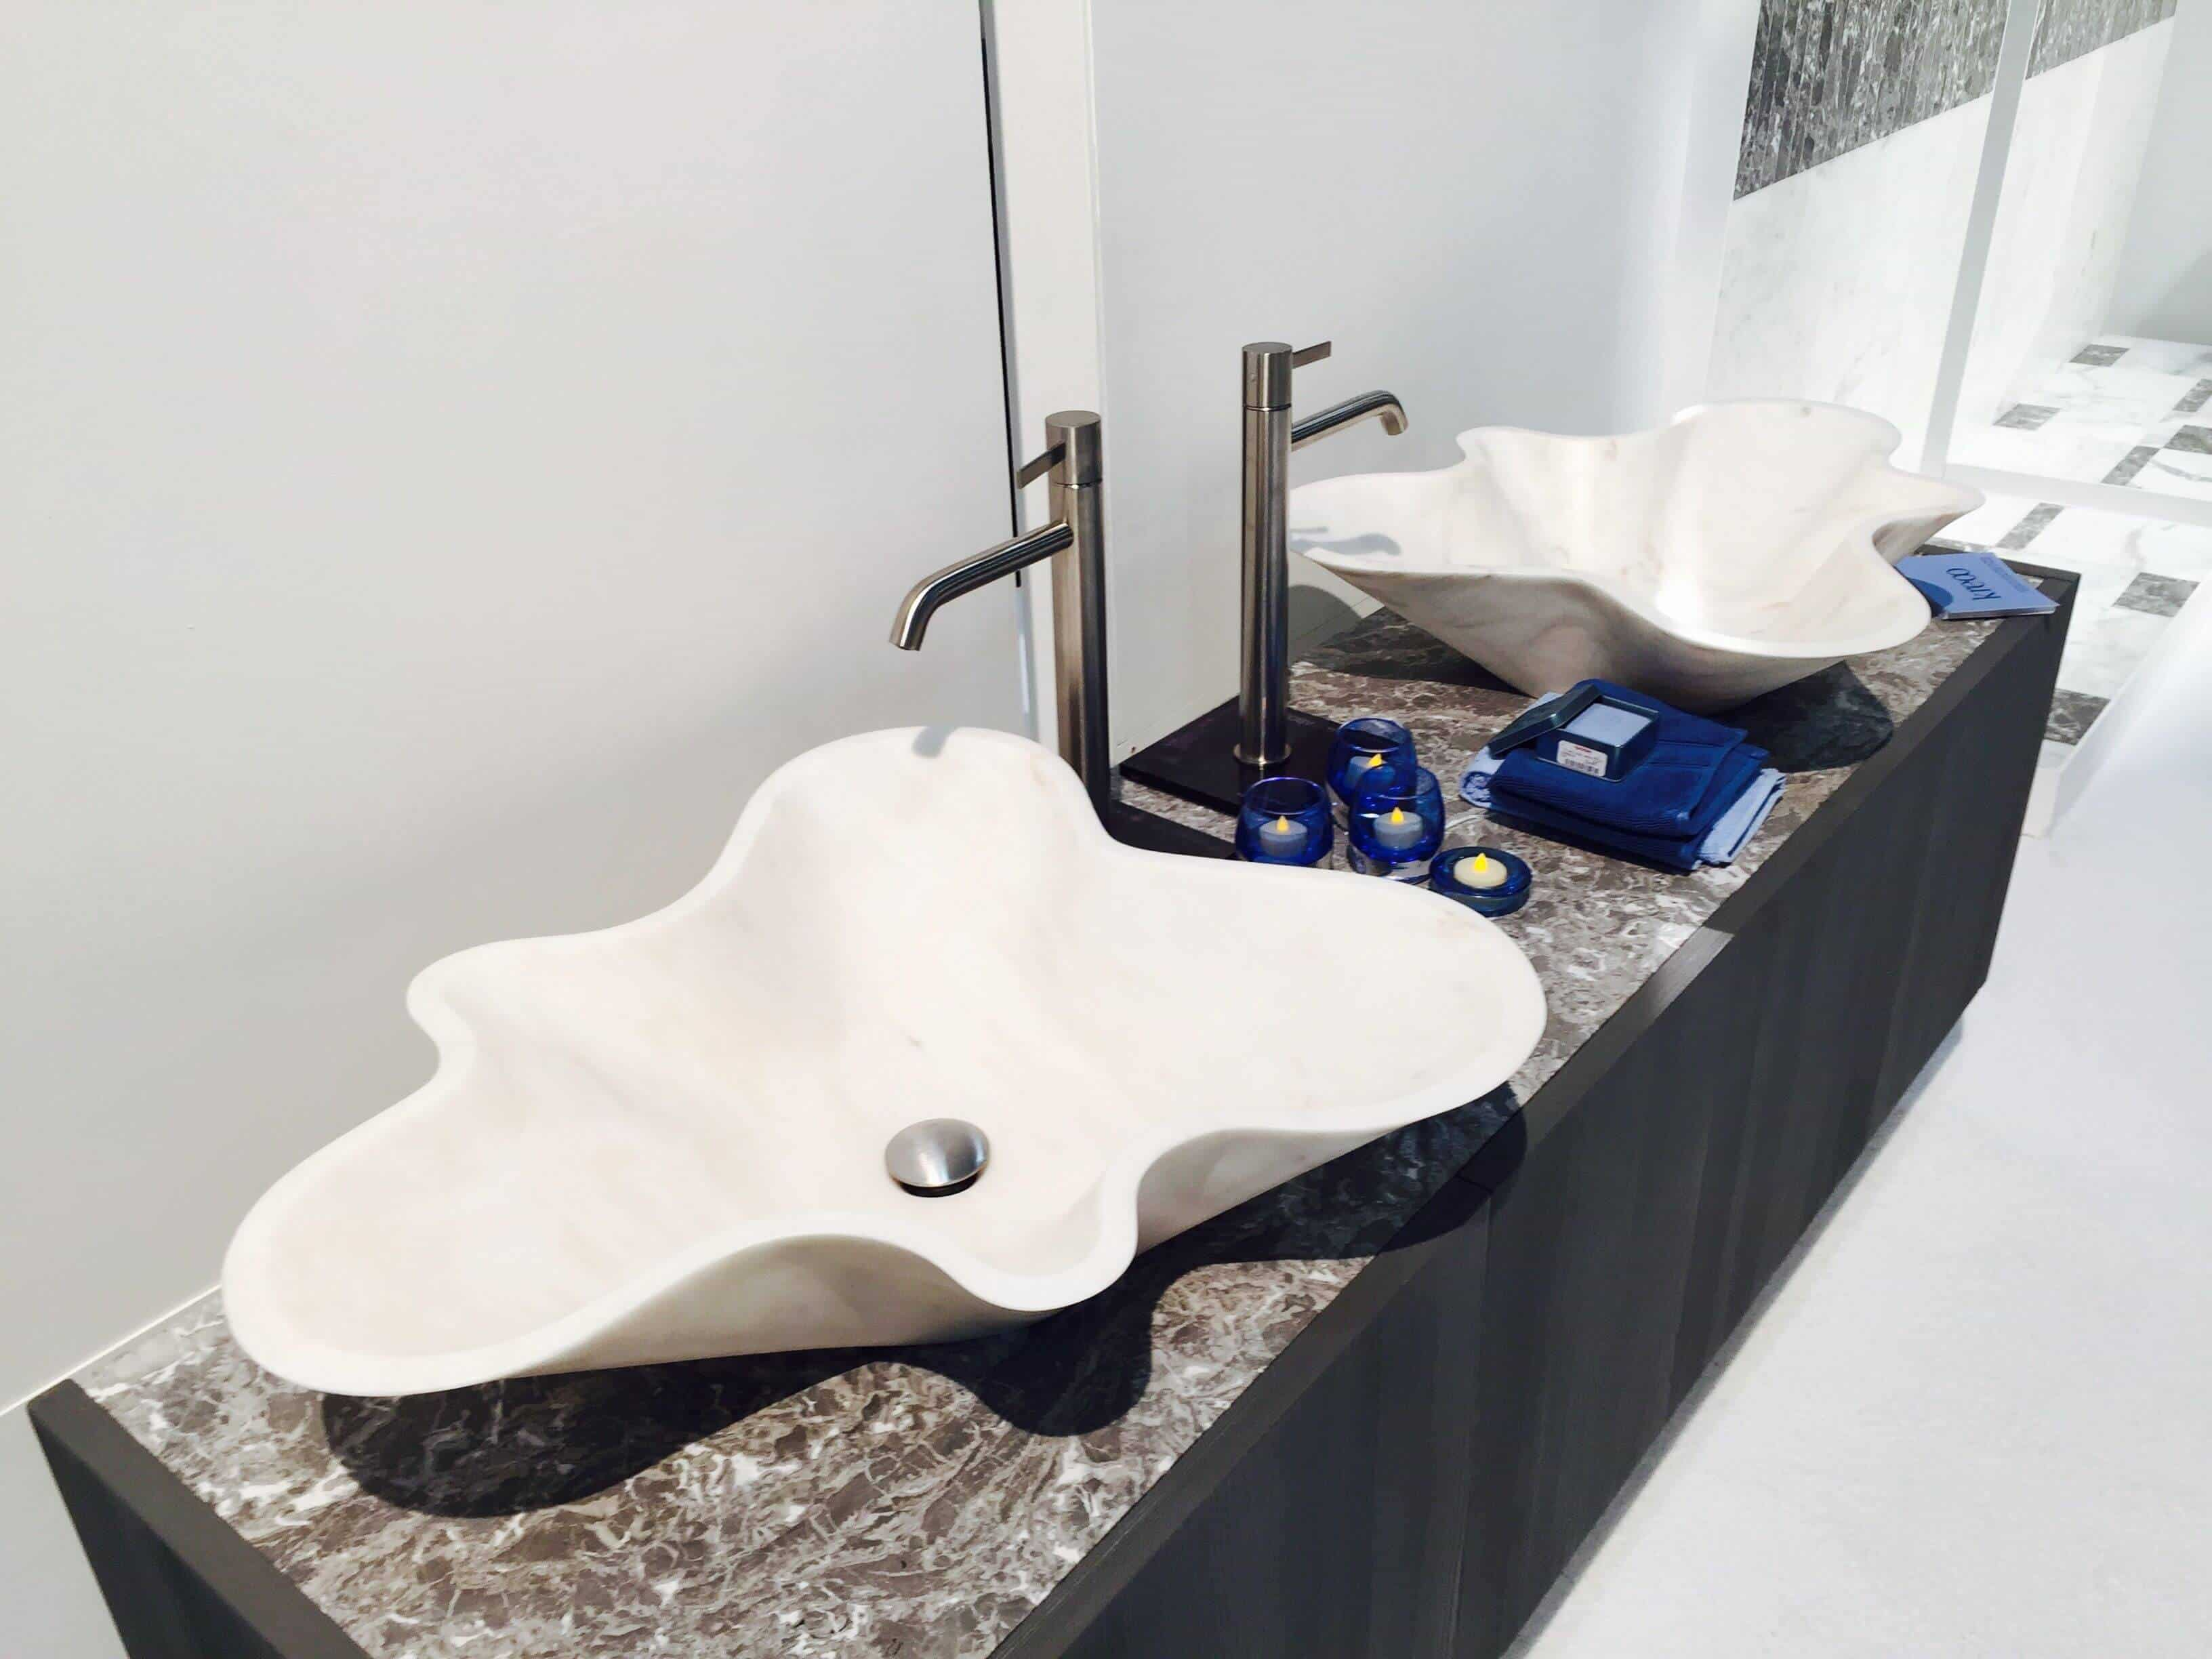 Bathroom sink design 22